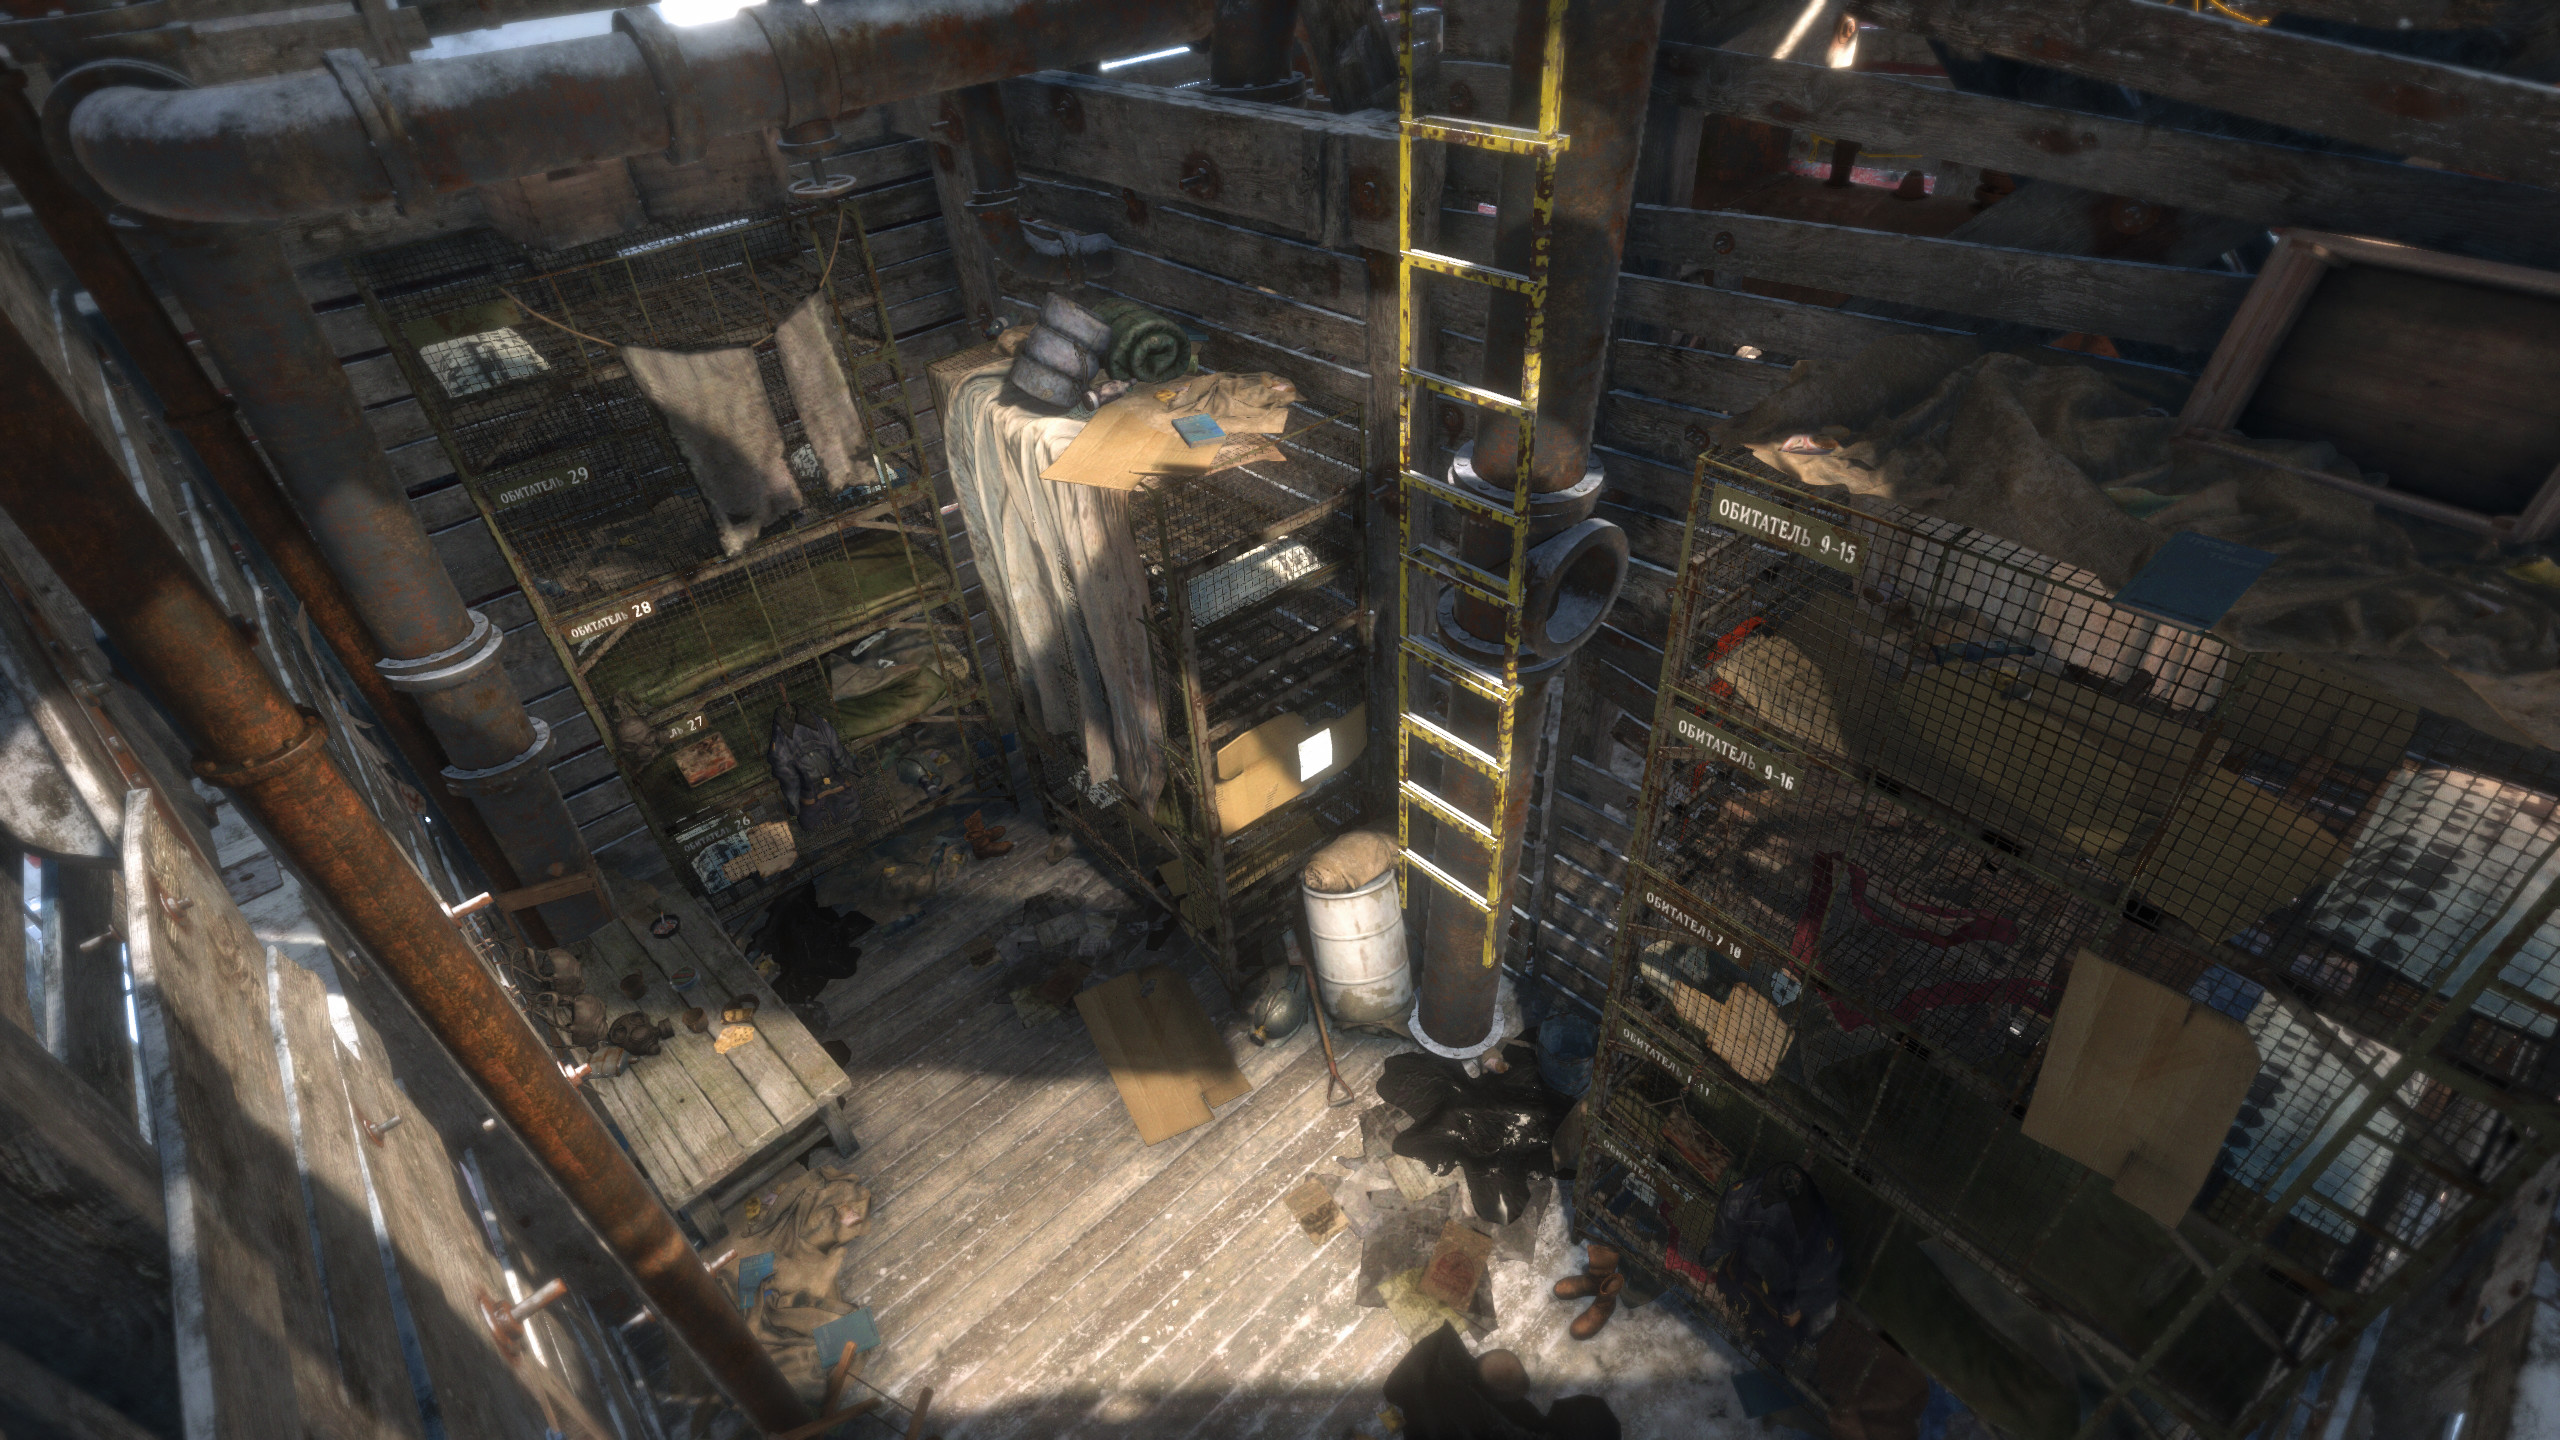 I was responsible for creating this whole area showing the working conditions of the miners. A lot of shared set dressing assets has been used along with some unique ones that were created by me for this scene.